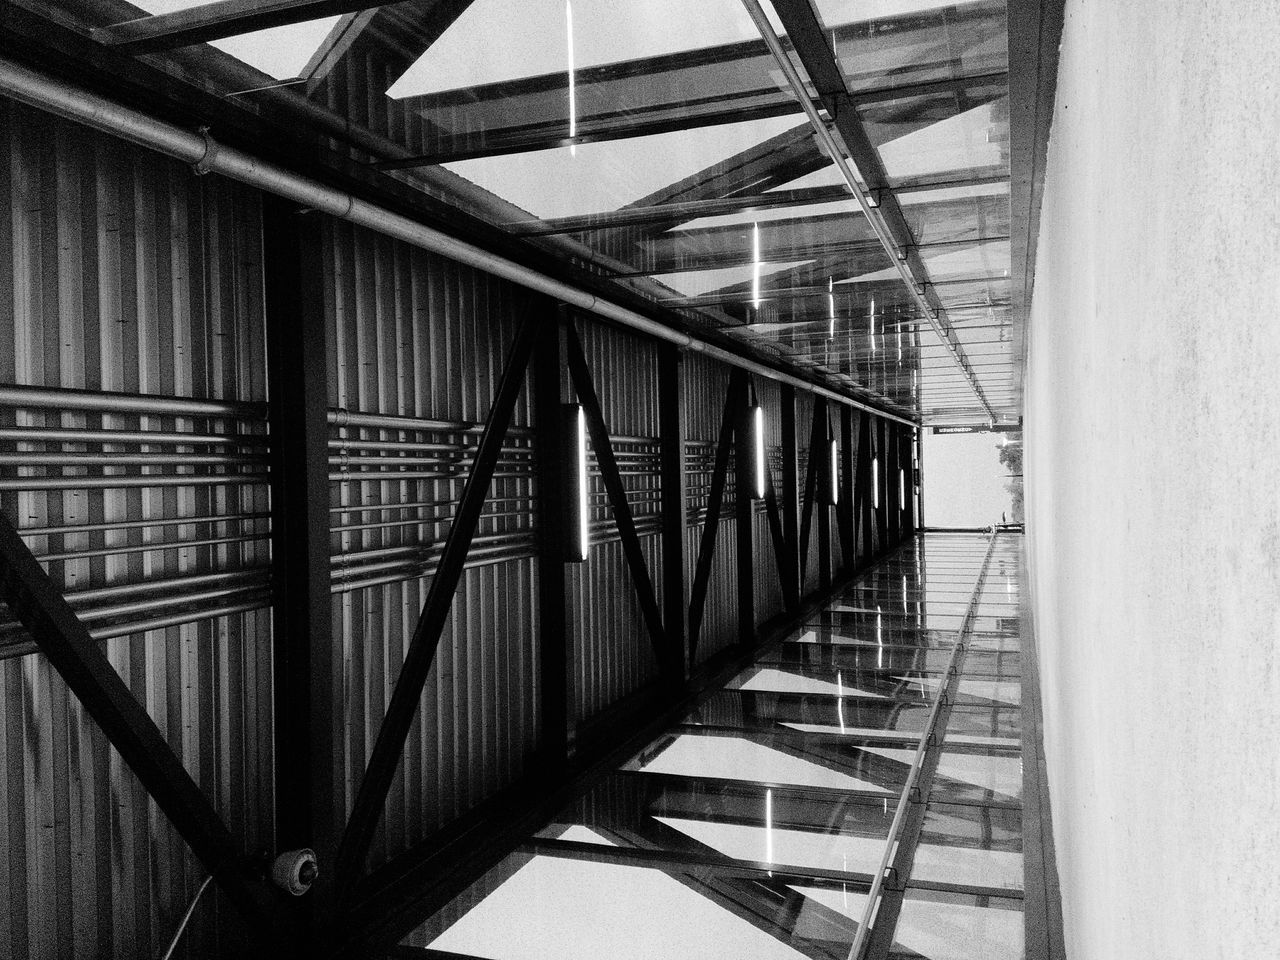 Rule Of Thirds Bridge - Man Made Structure Architecture Inside Things Black And White Photography Monotone Sepia_collection Monochrome _ Collection Geometry Everywhere Geometric Shapes Metal Zigzag